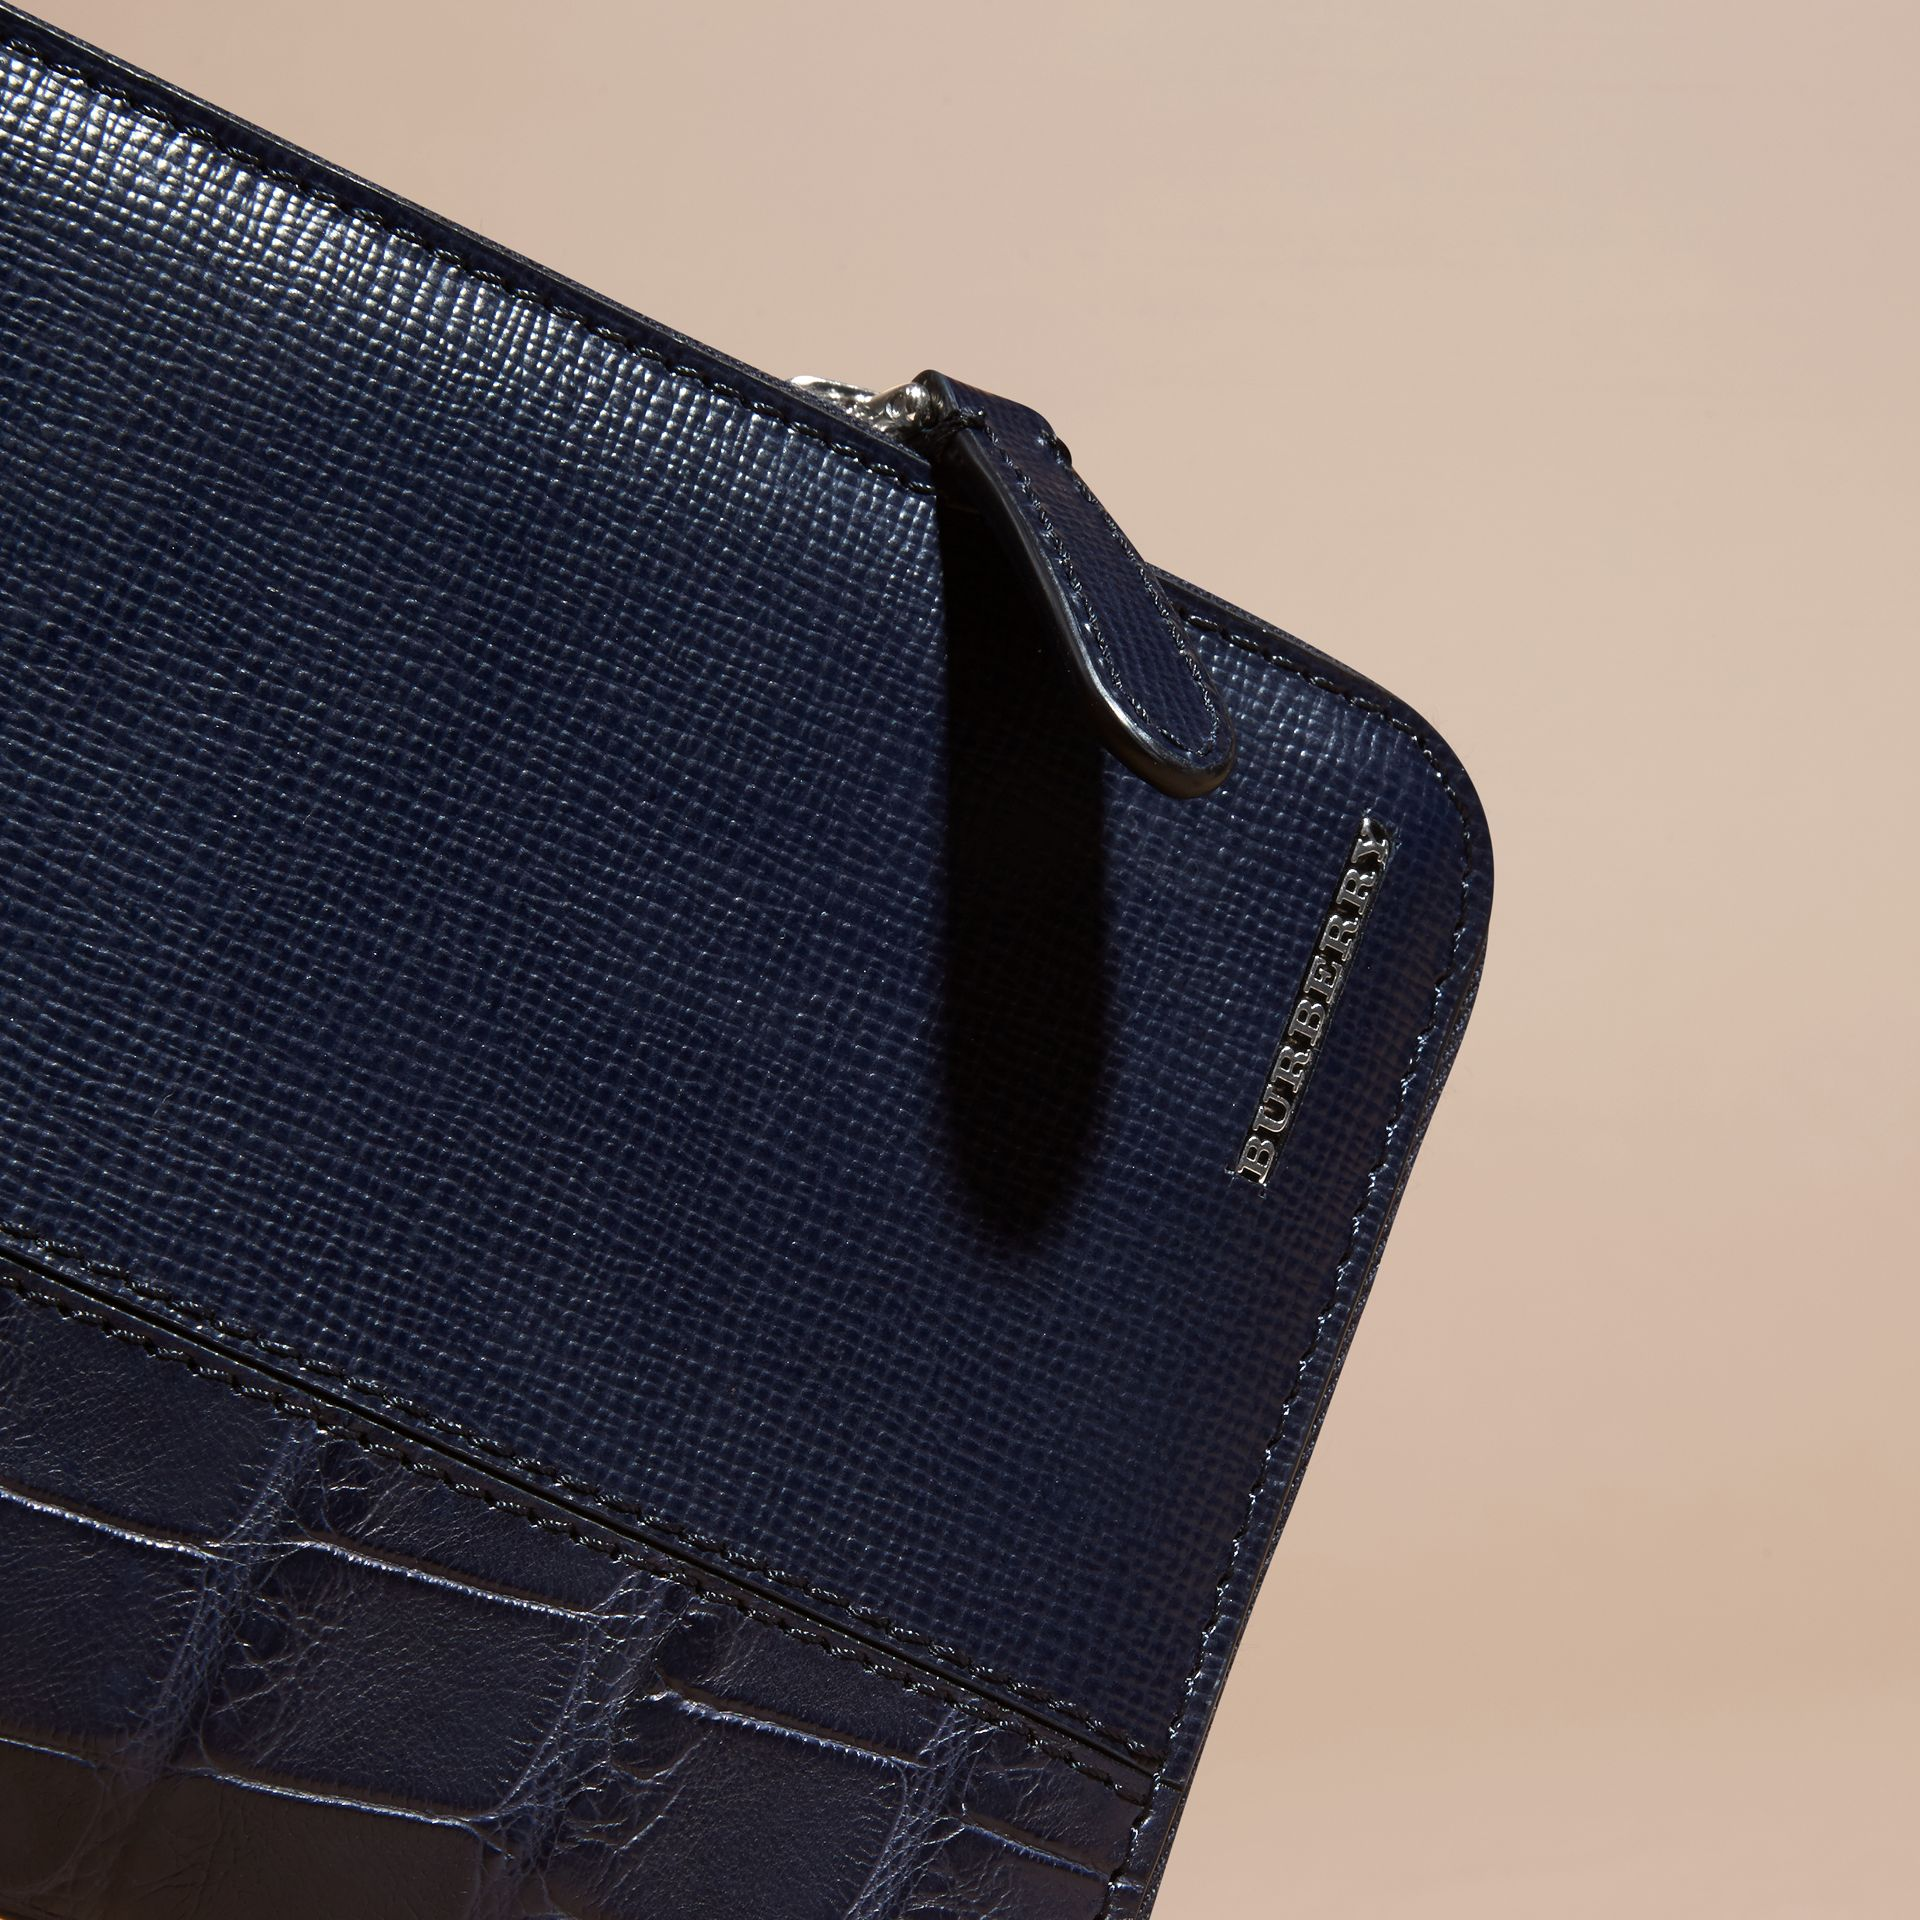 London Leather and Alligator Ziparound Wallet Dark Navy - gallery image 2